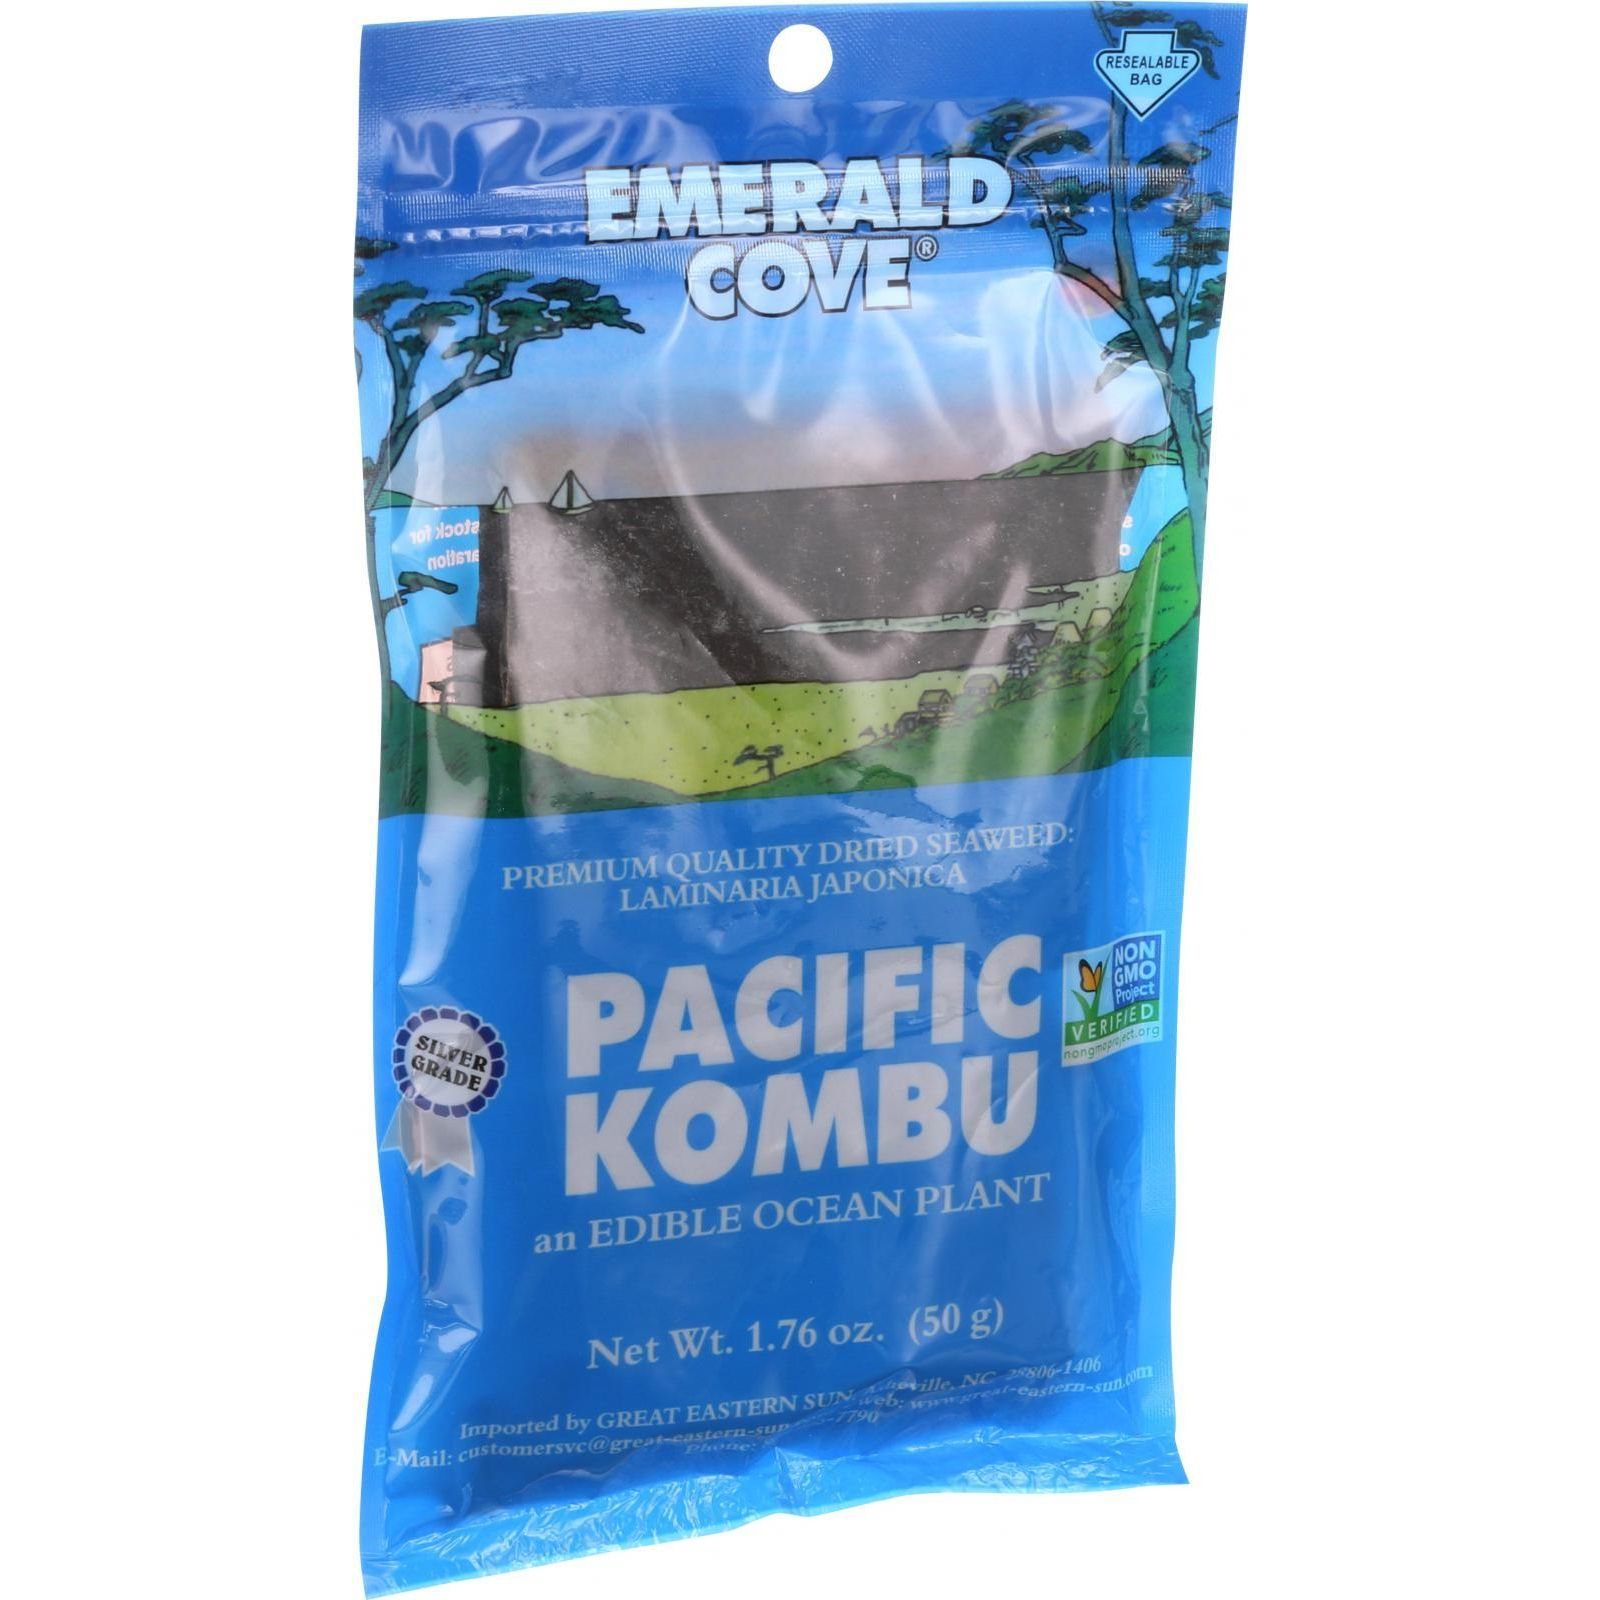 Emerald Cove Sea Vegetables Pacific Kombu Silver Grade 1.76 oz Case of 6 by